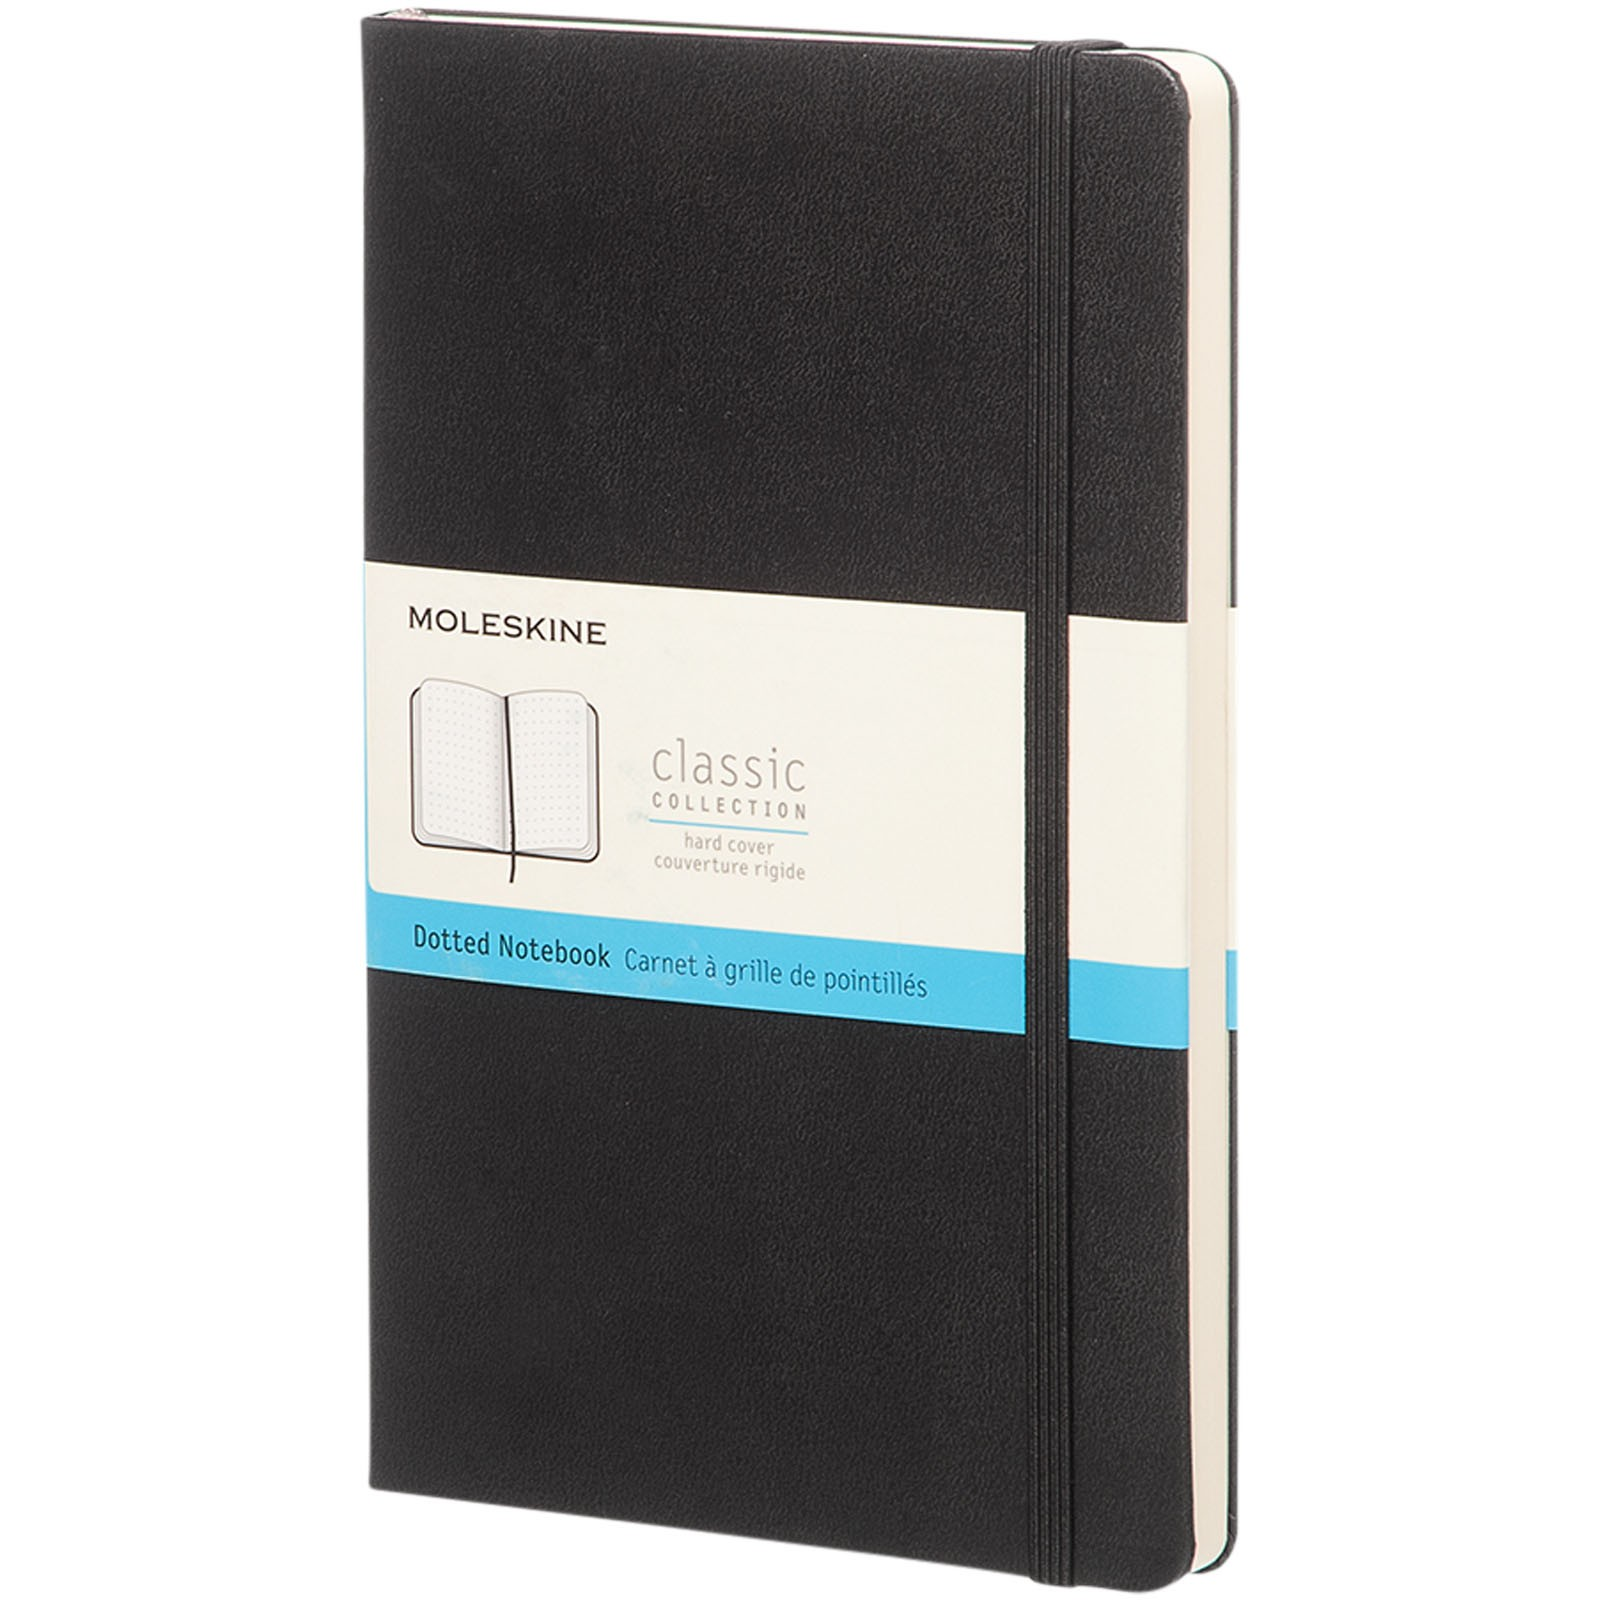 Classic L hard cover notebook - dotted - Solid black